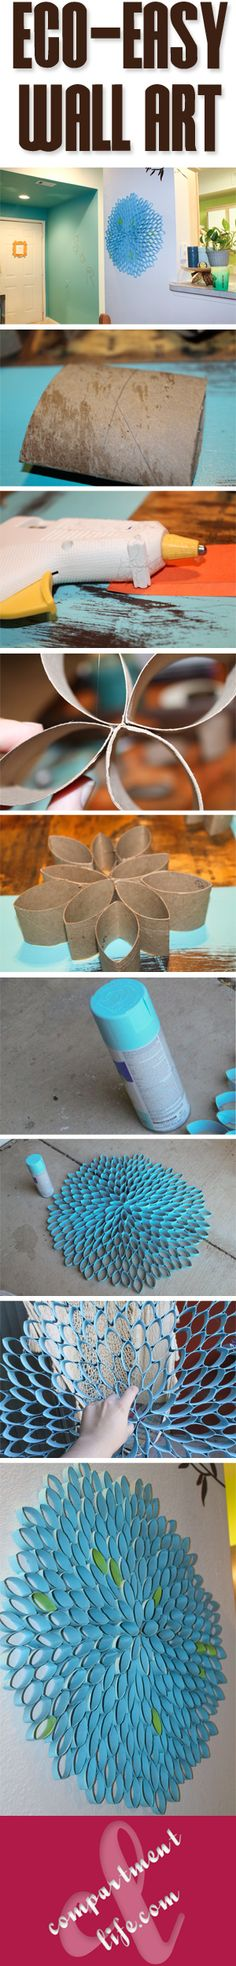 toilet paper rolls and spray paint.